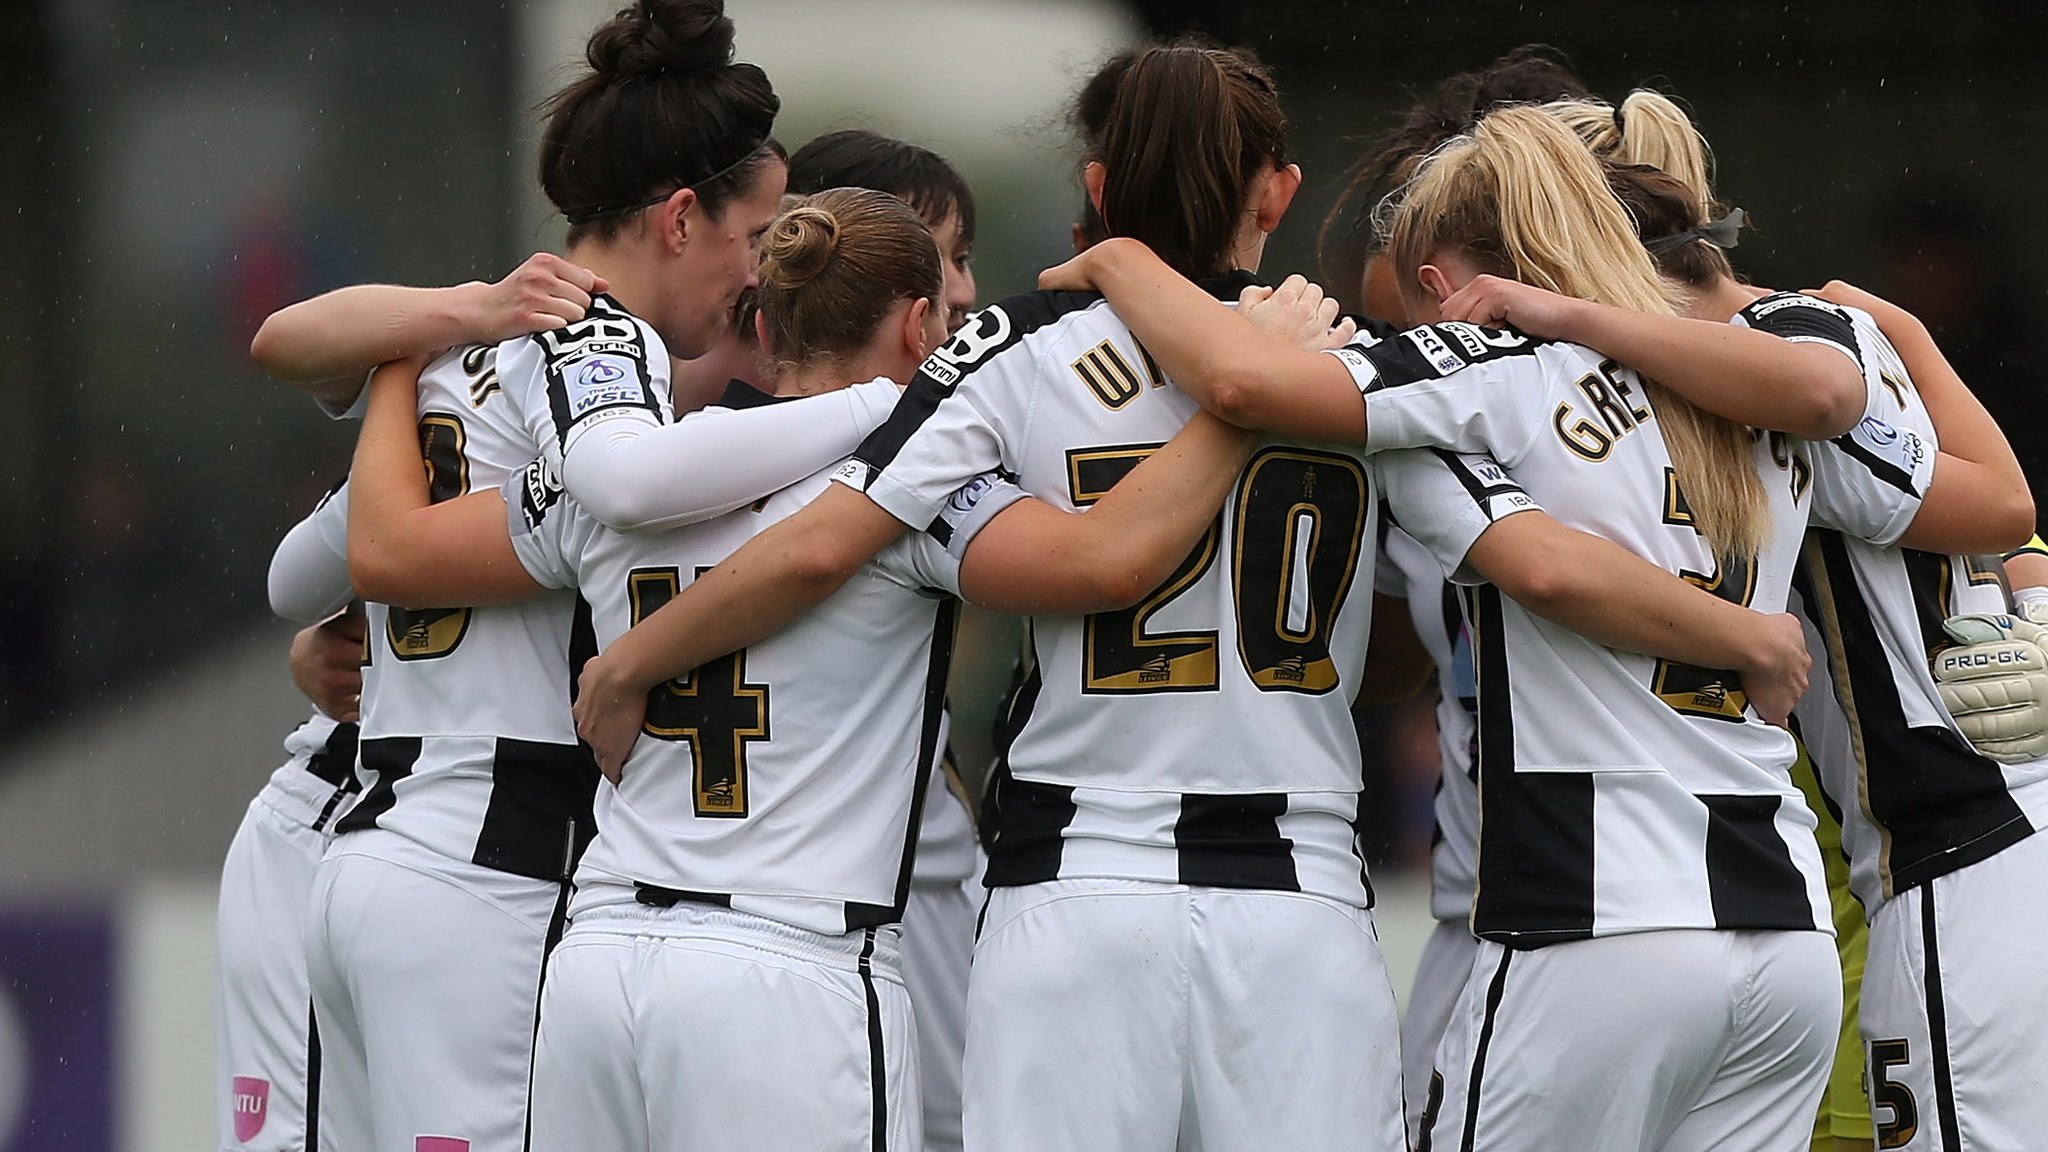 Notts County: Owner announces women's team to be reformed 13 months after folding